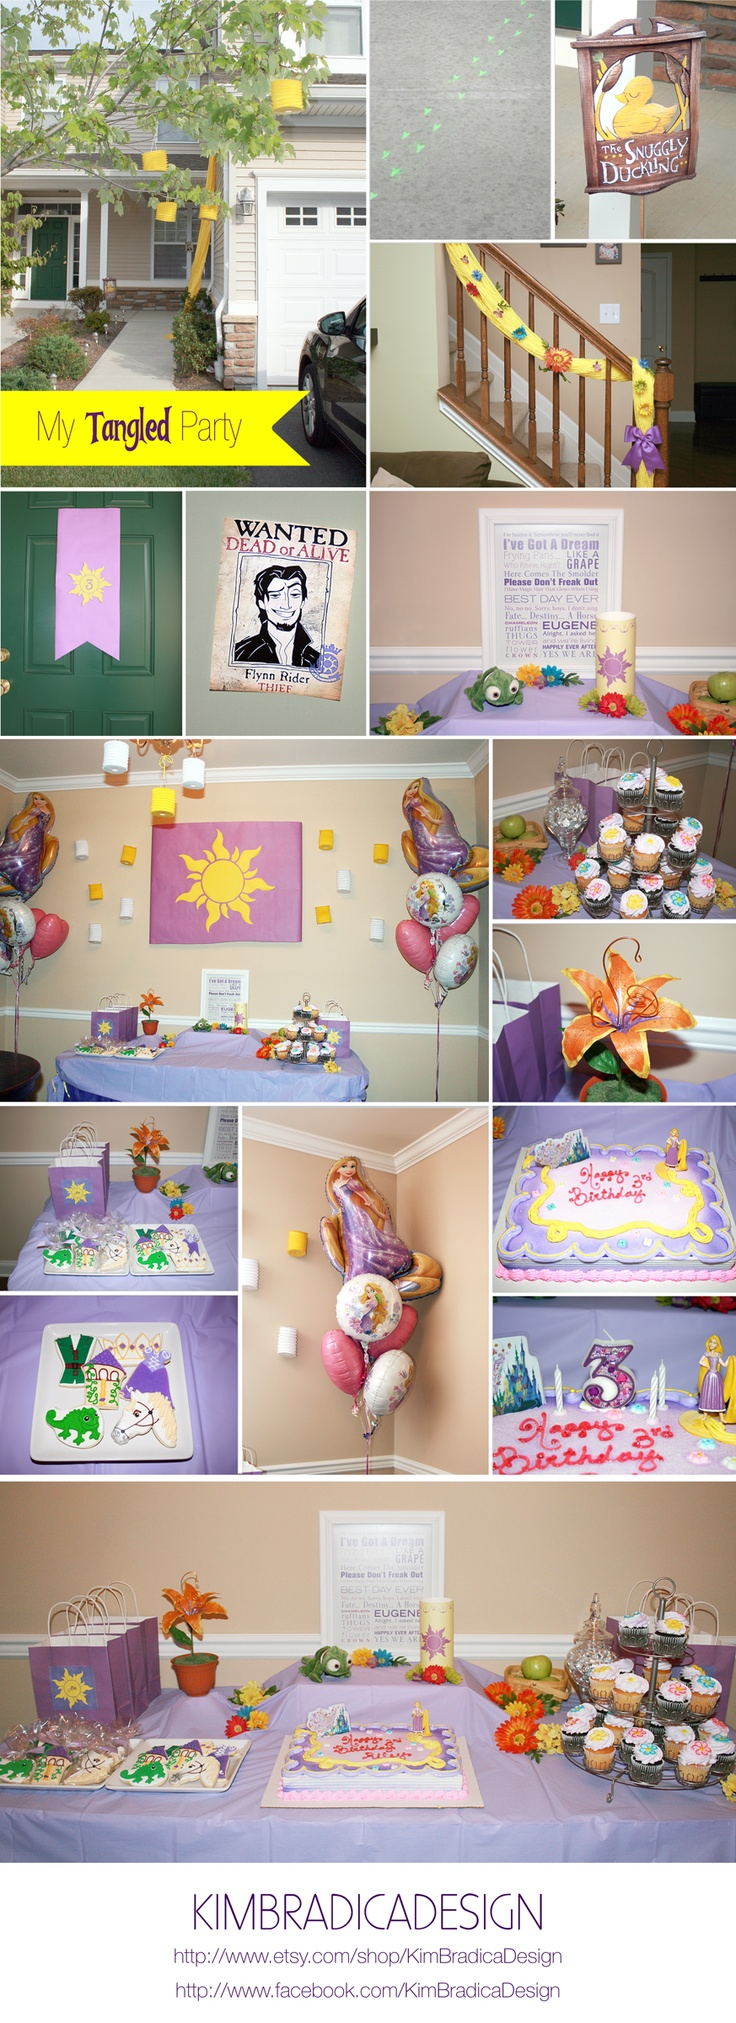 My Tangled Party... We need a snugly duckling sign!